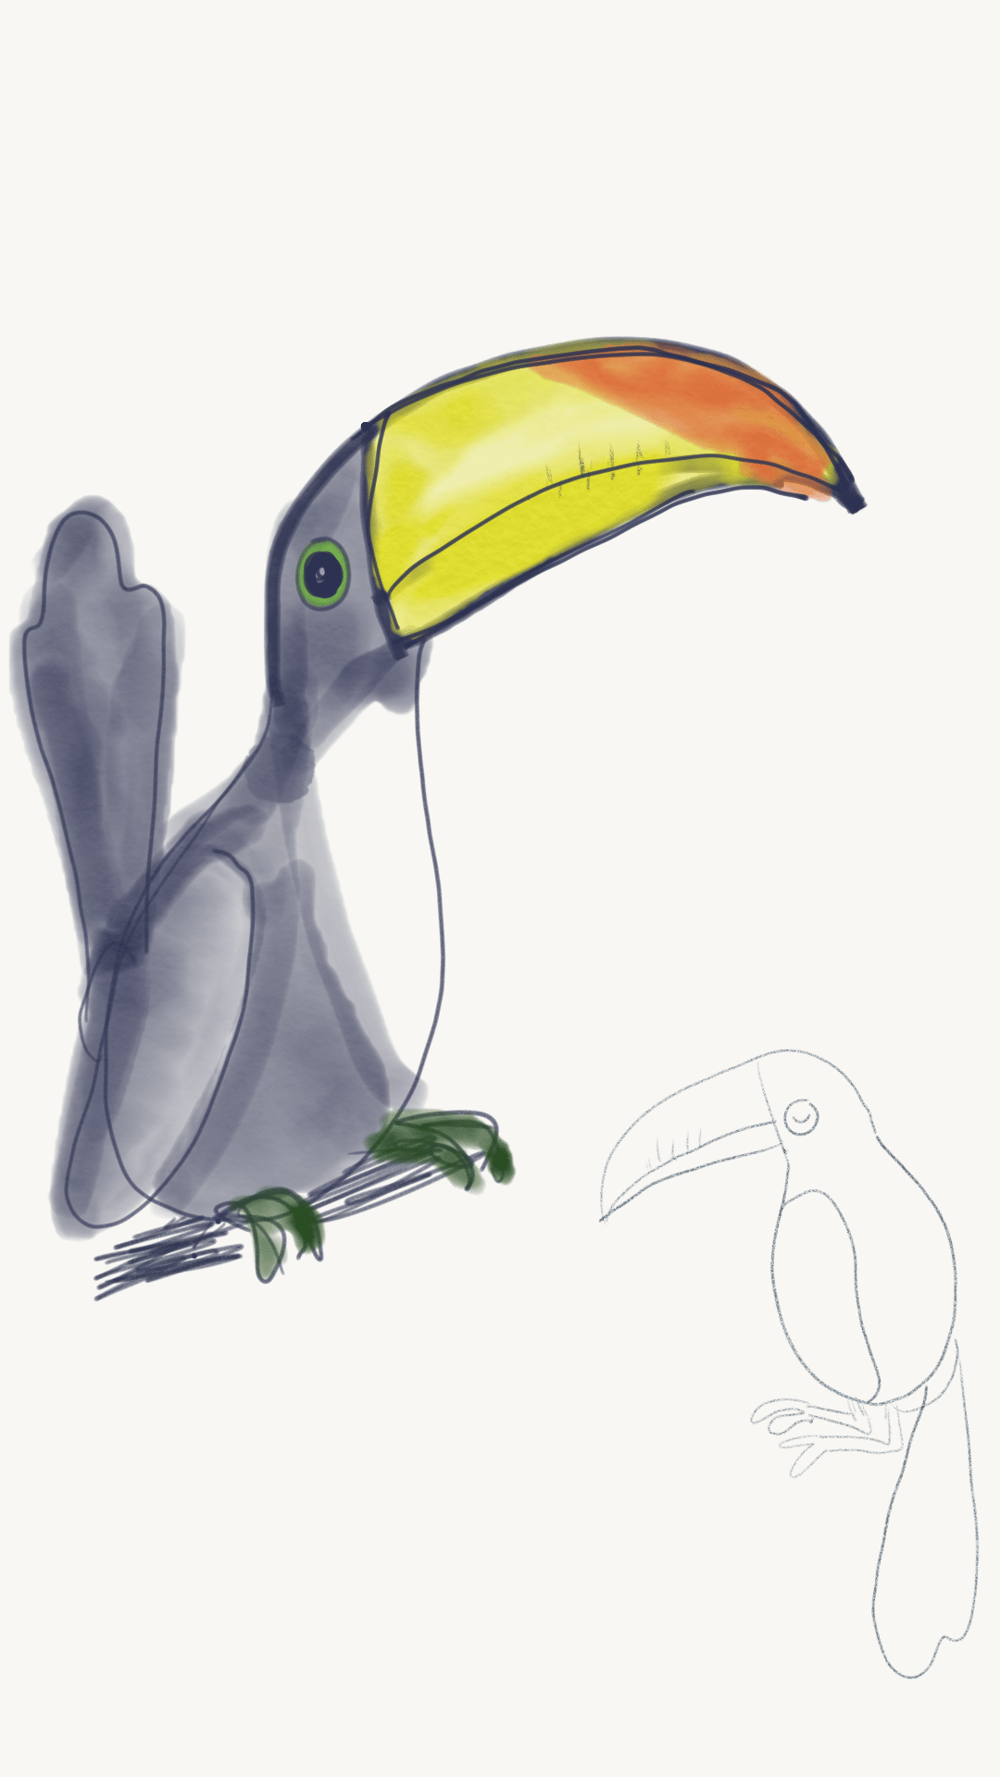 Hipster Toucan - image 4 - student project